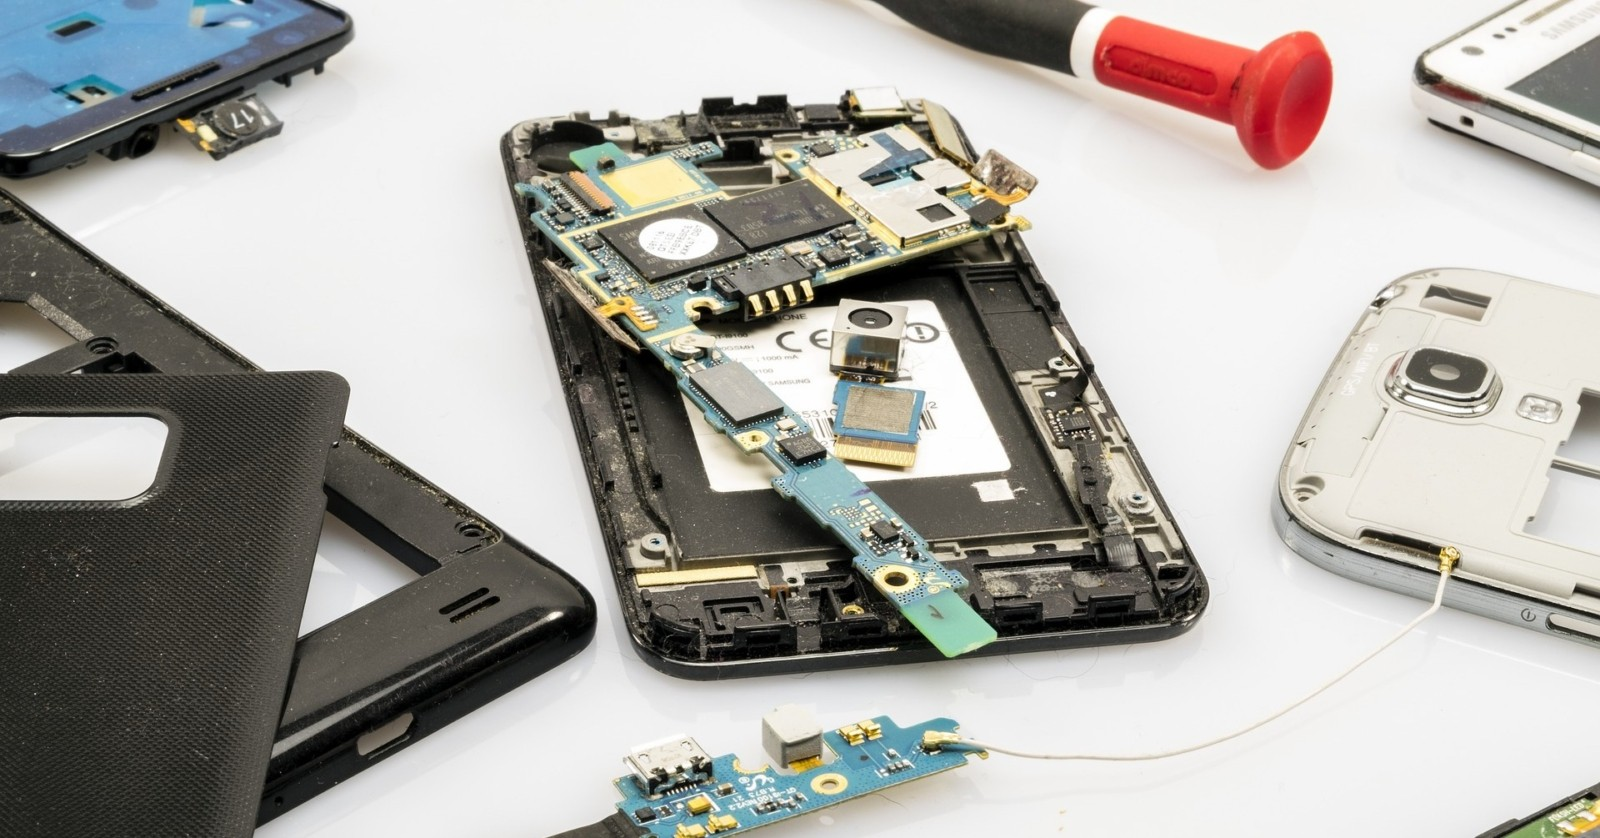 Image shows a mobile phone, opened and with antenna removed.